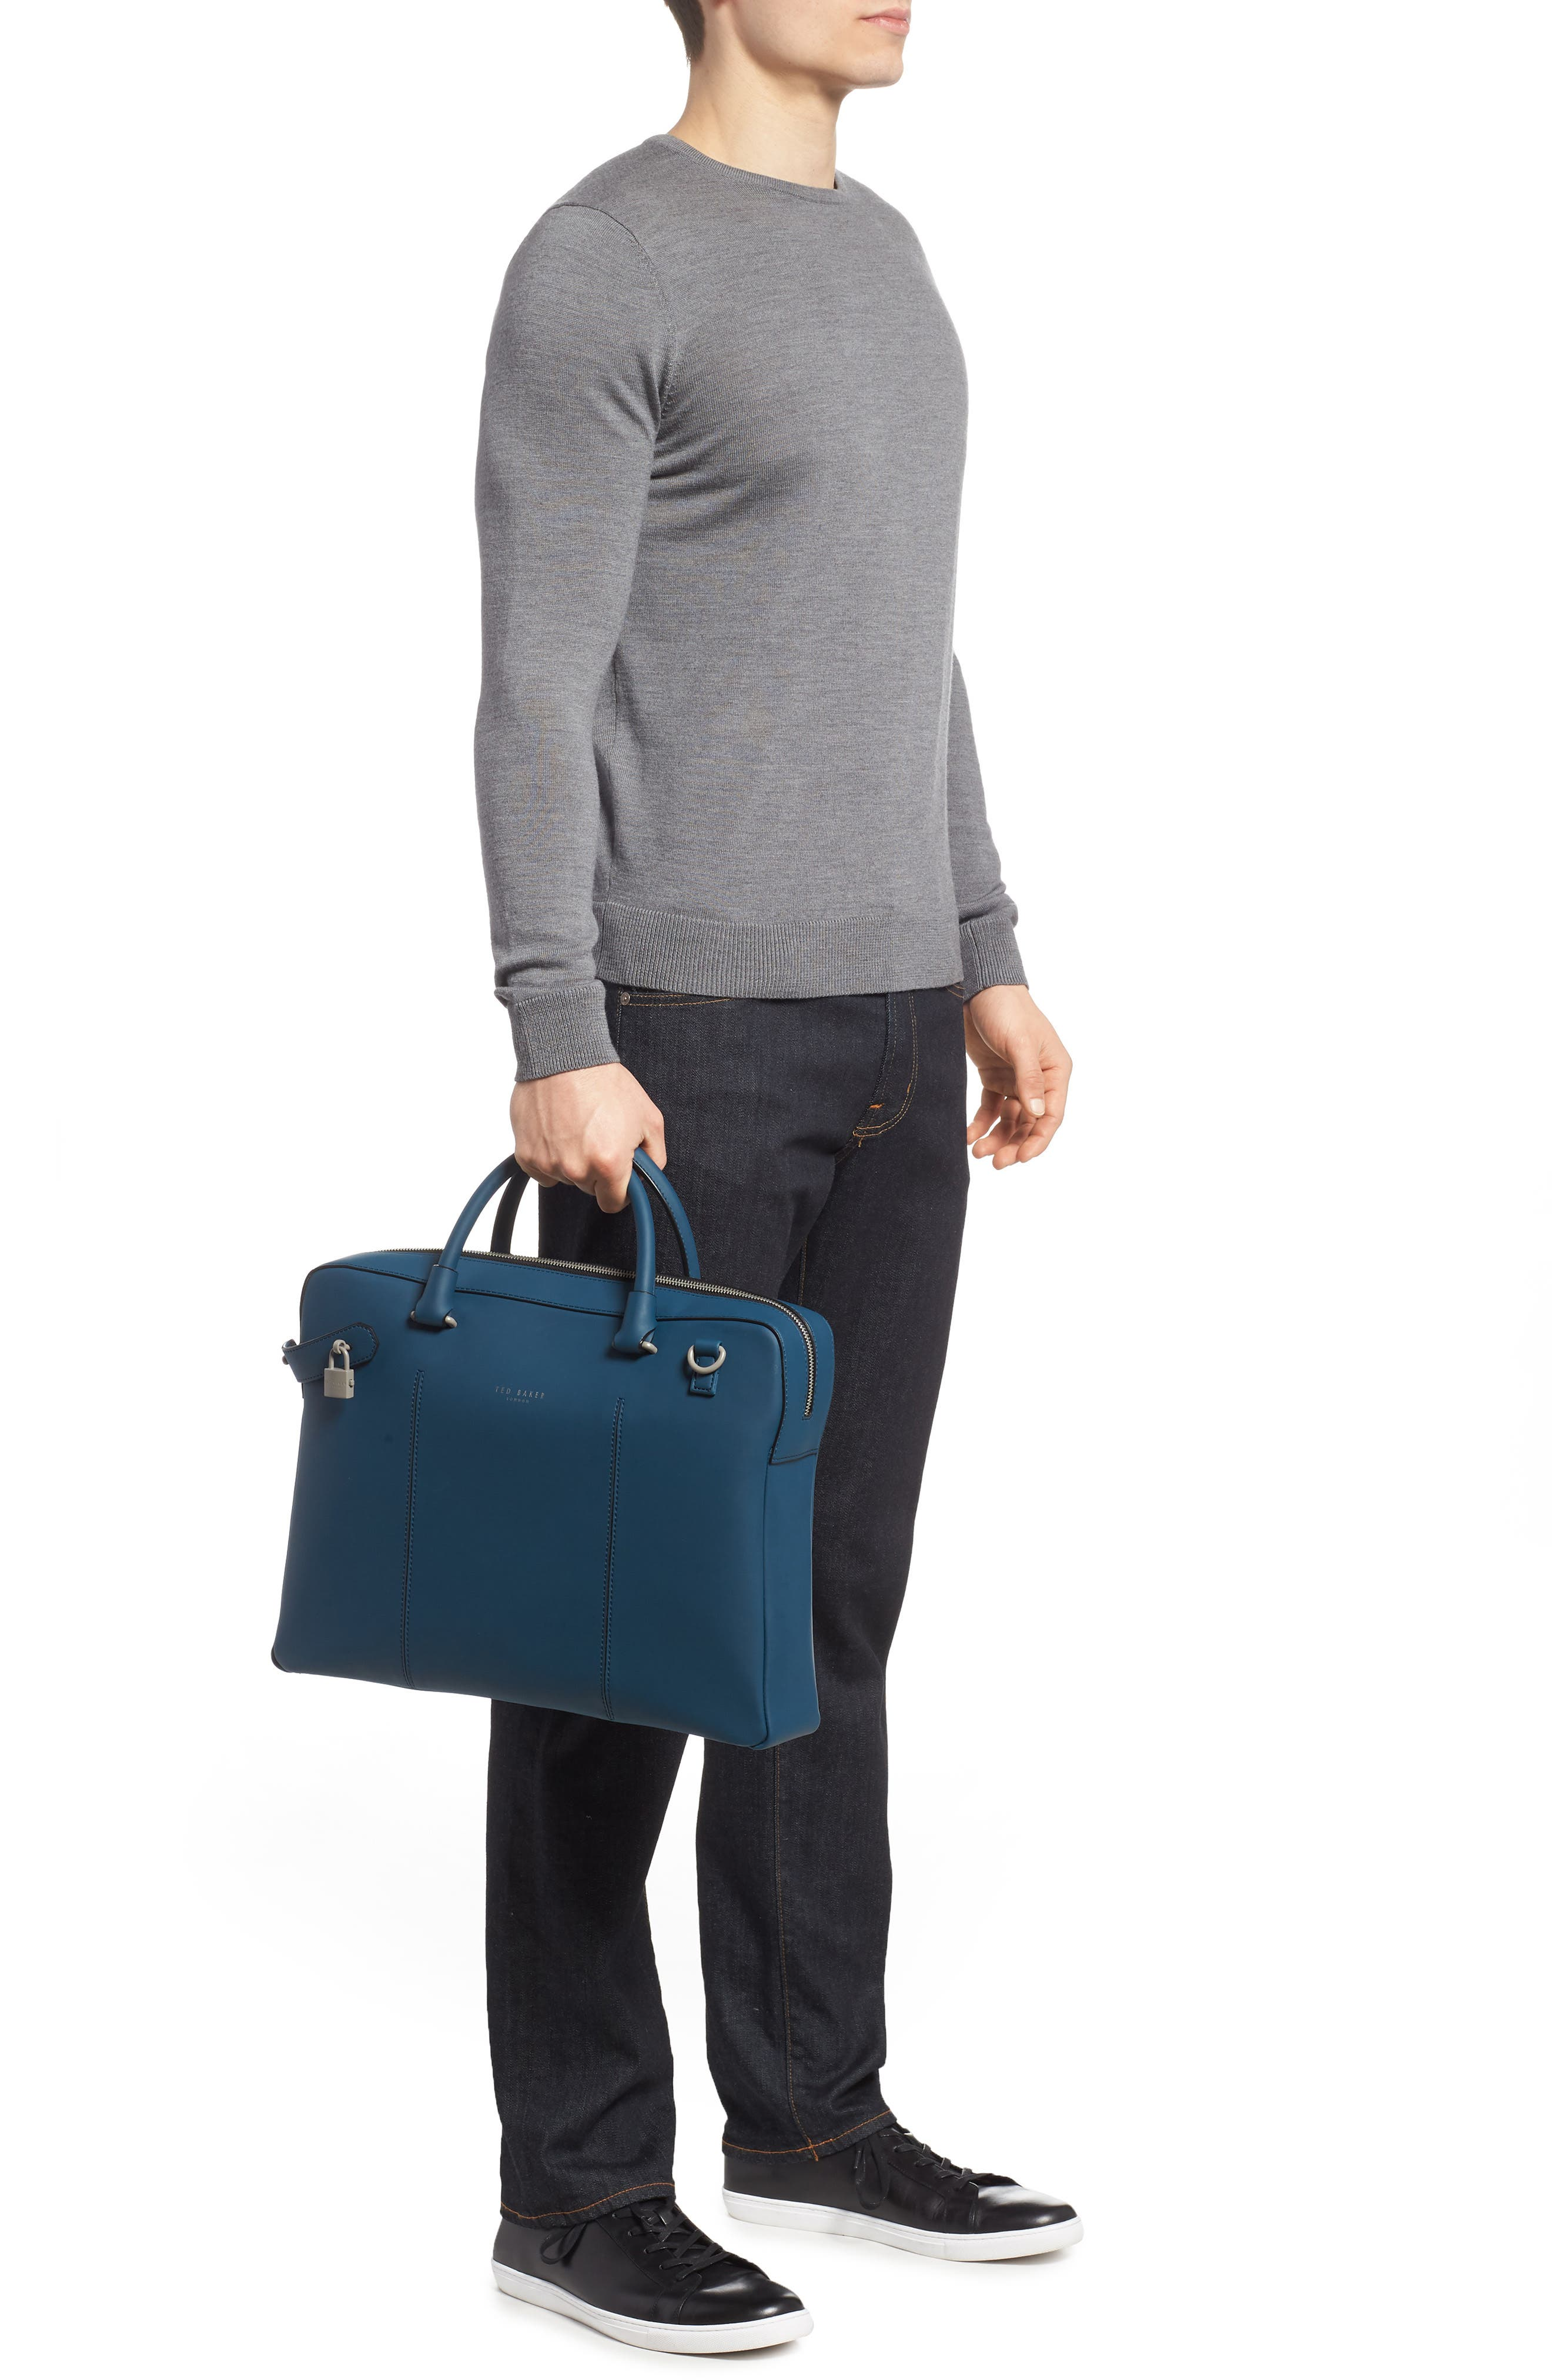 Carab Document Bag,                             Alternate thumbnail 2, color,                             Navy